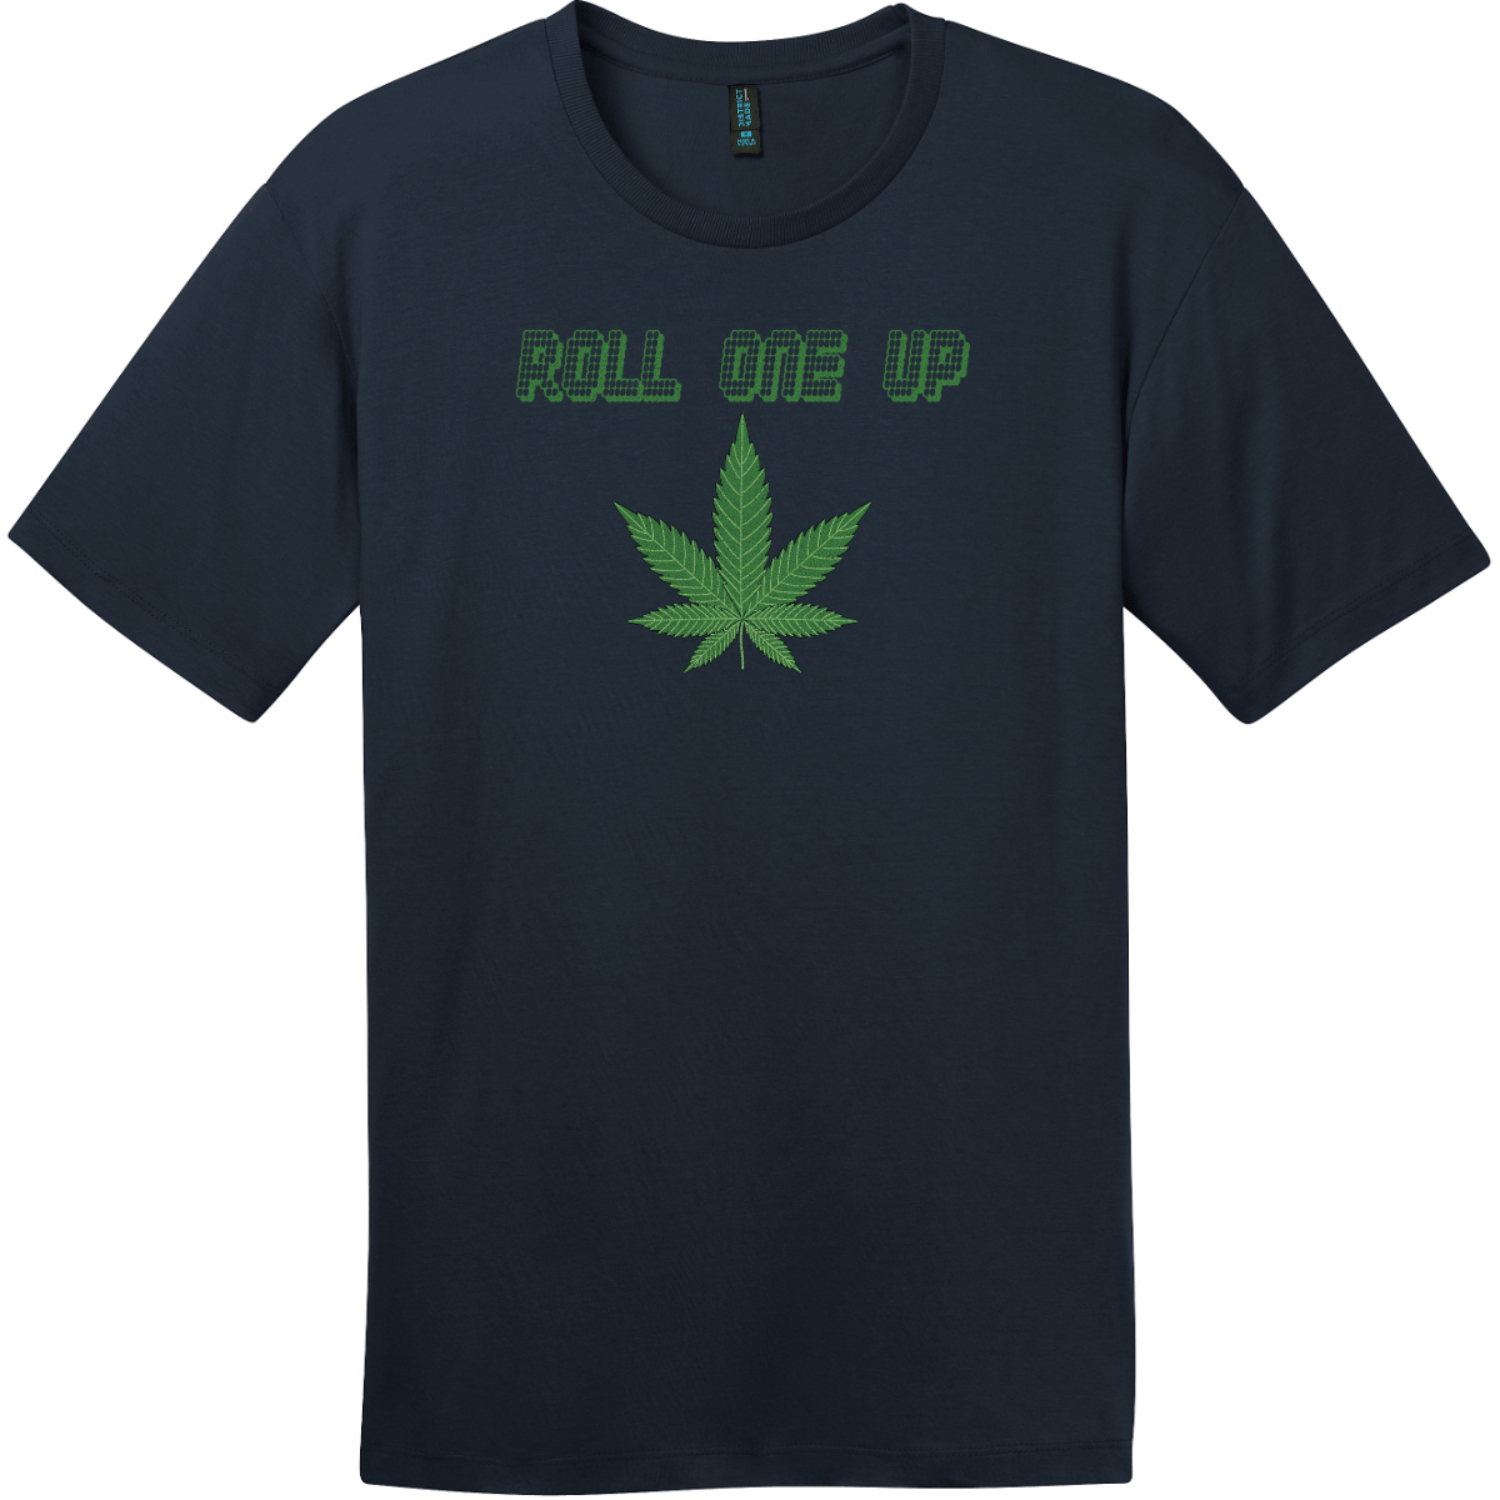 Roll One Up Weed T-Shirt New Navy District Perfect Weight Tee DT104